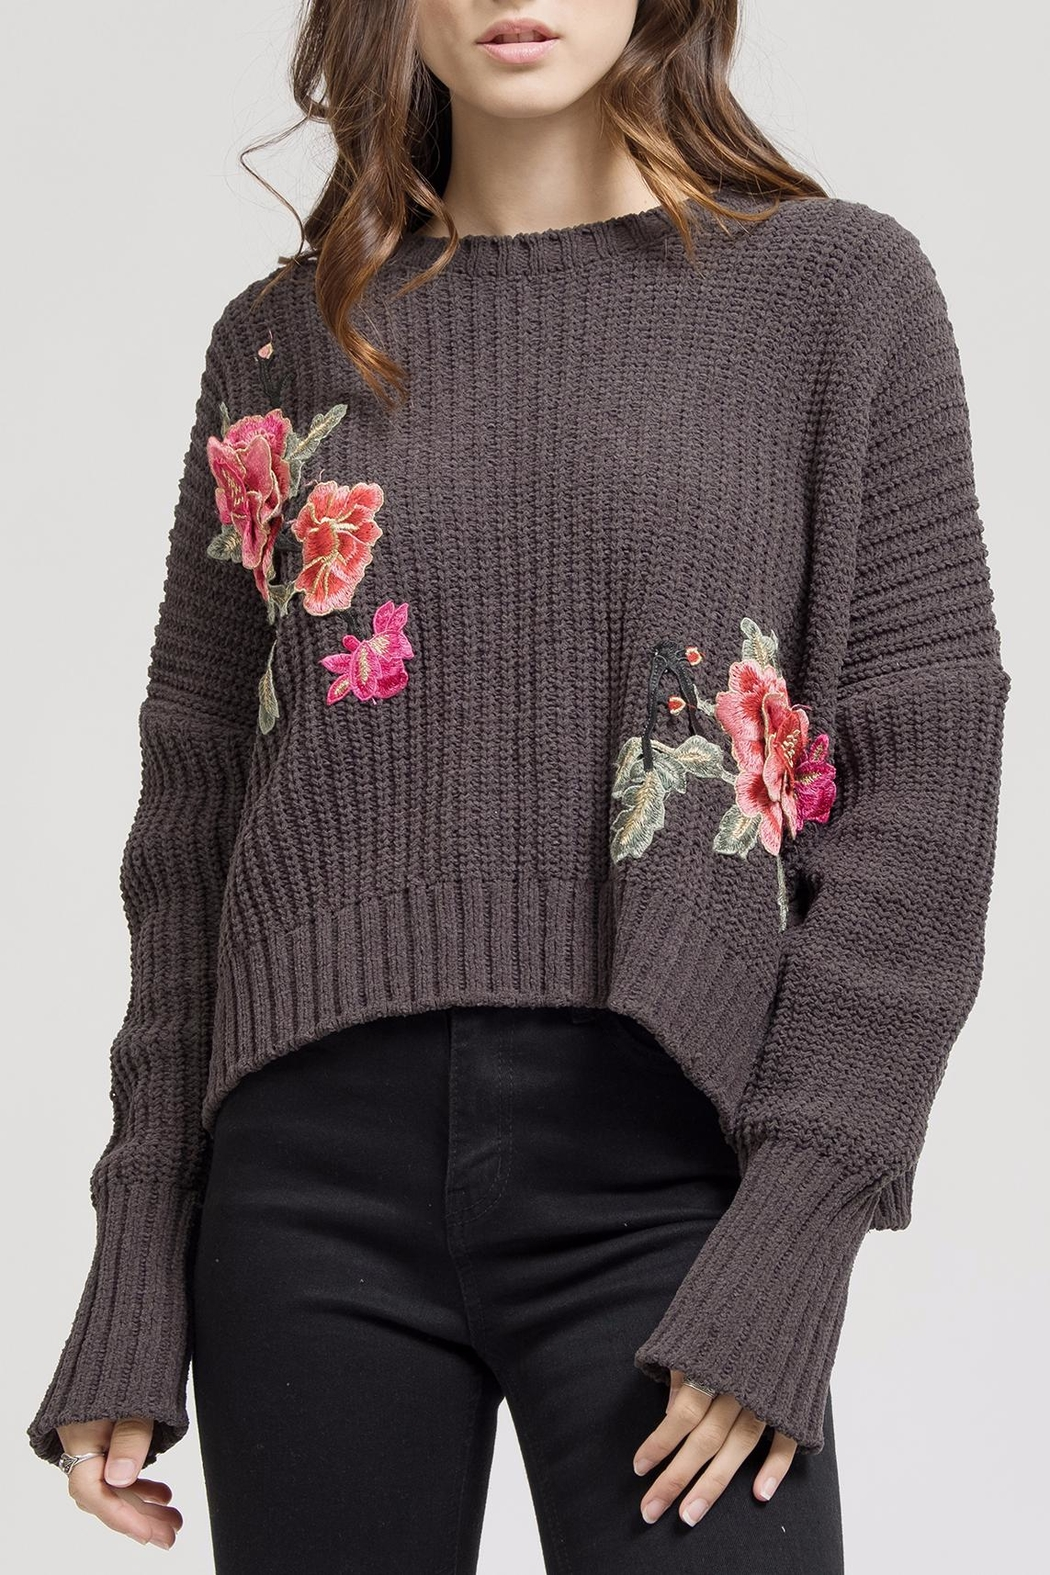 Blu Pepper Floral Embroidery Sweater - Main Image